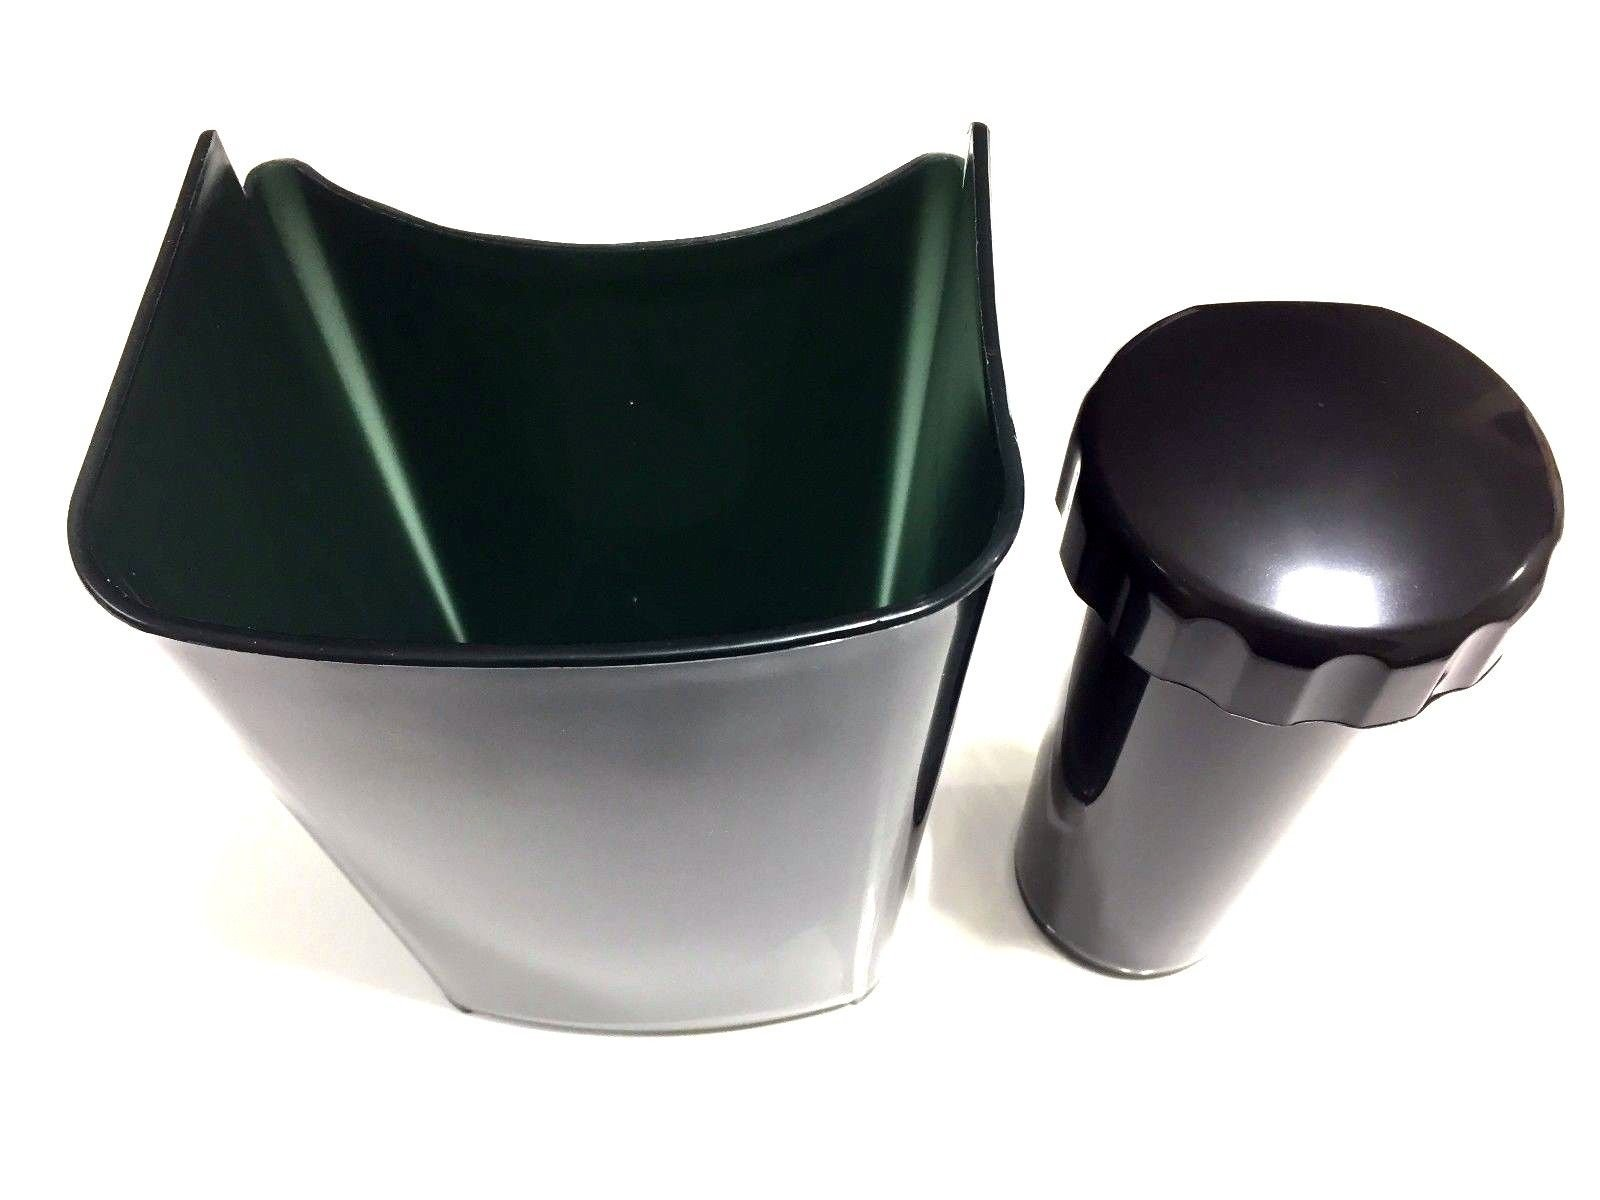 Replacement Pulp Collector & Pusher for Jack Lalanne Power Juicer